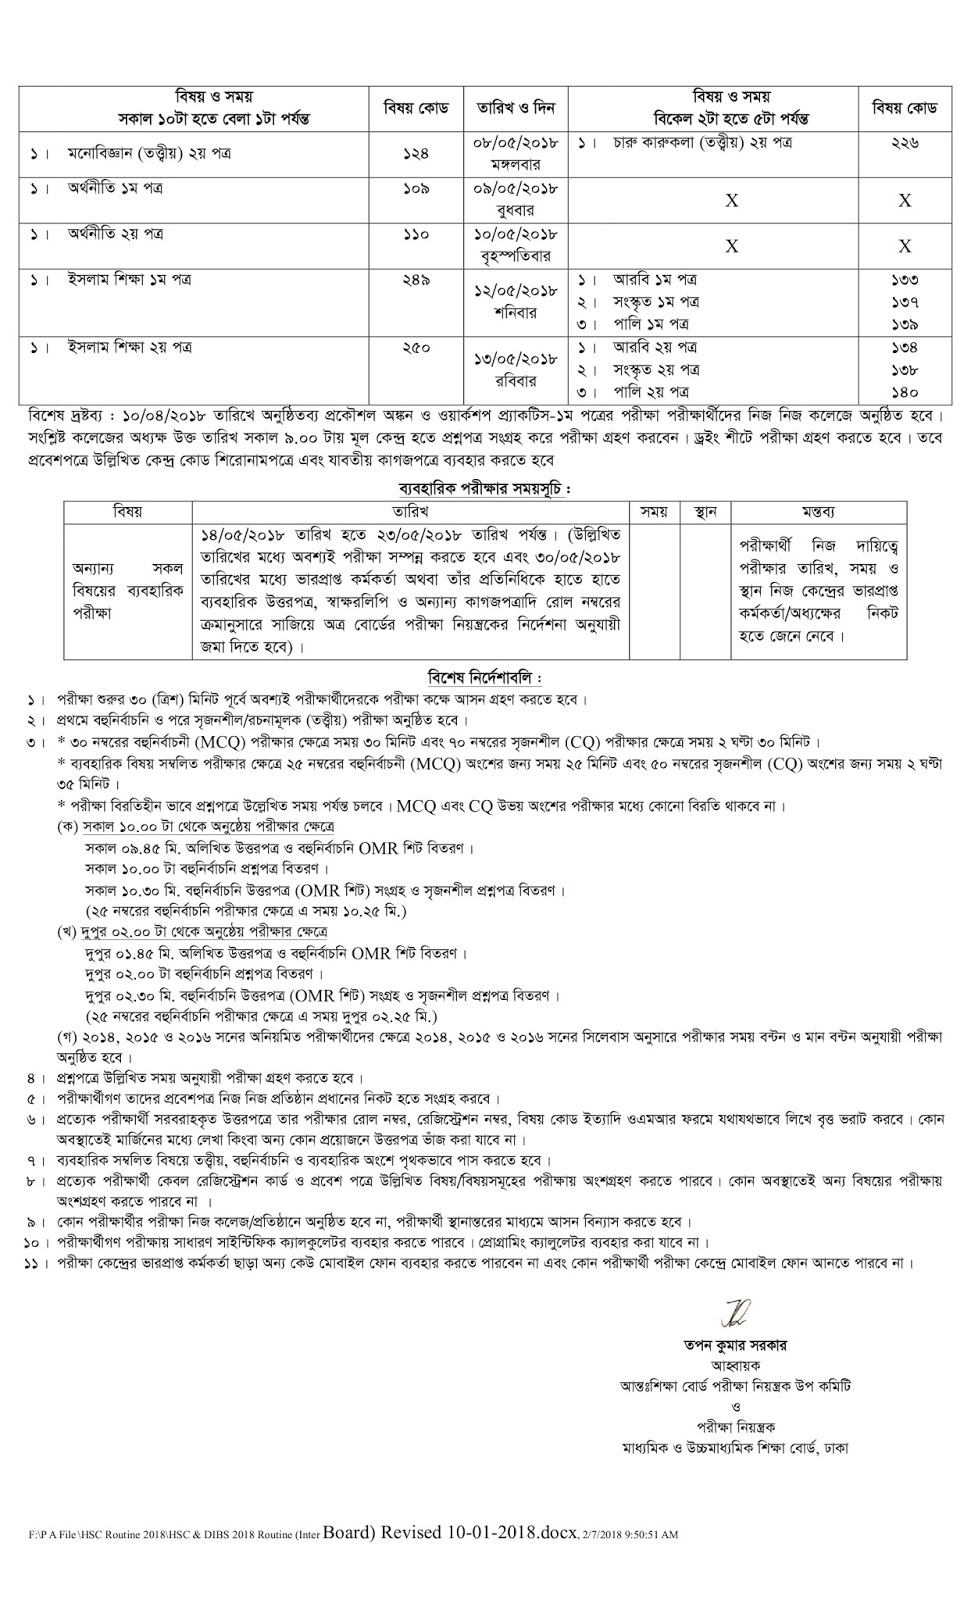 HSC Exam Routine Time Table 2018 For All education Board of Bangladesh 4